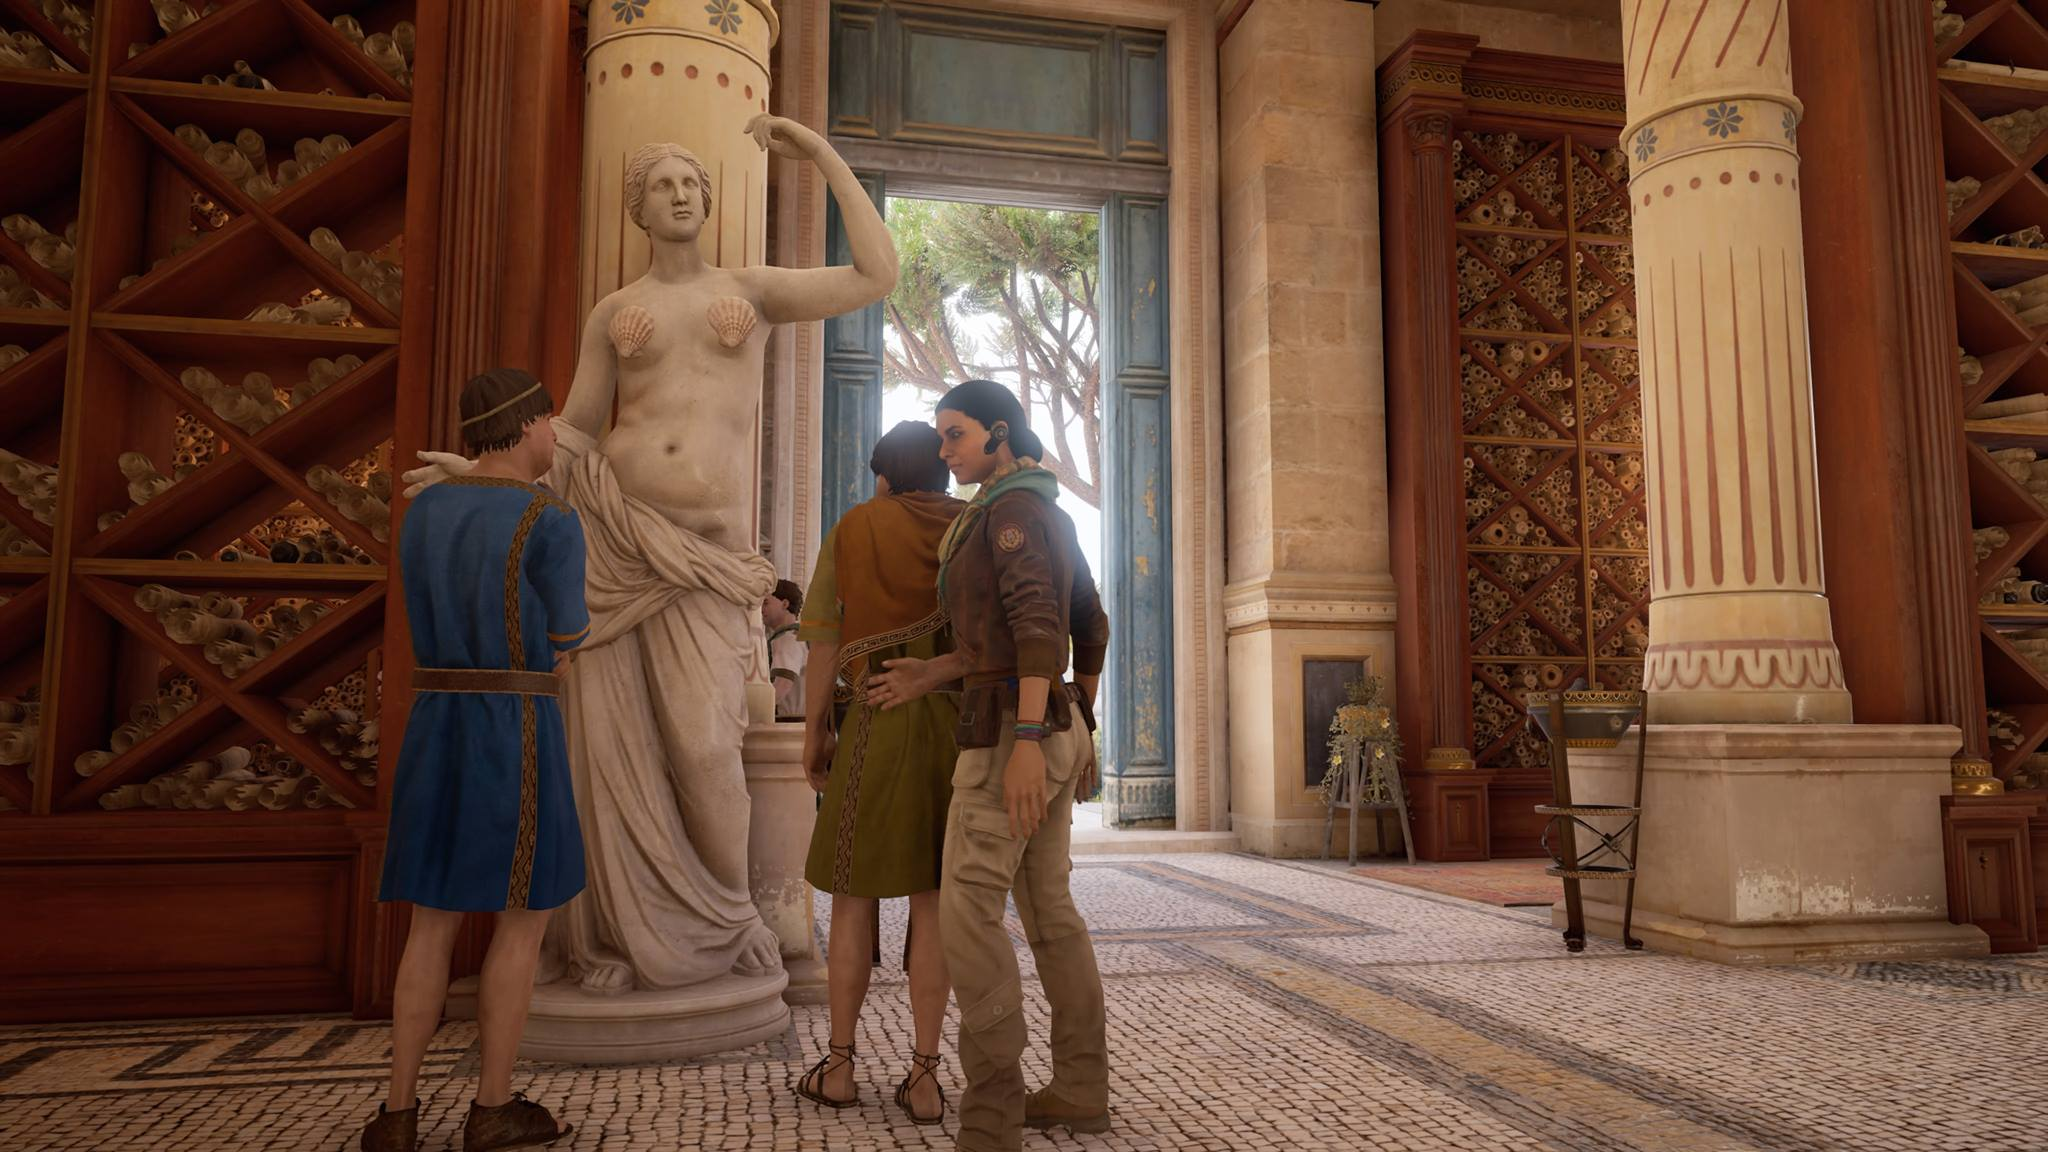 Ubisoft Censors Nude Statues in Assassins Creed: Origins